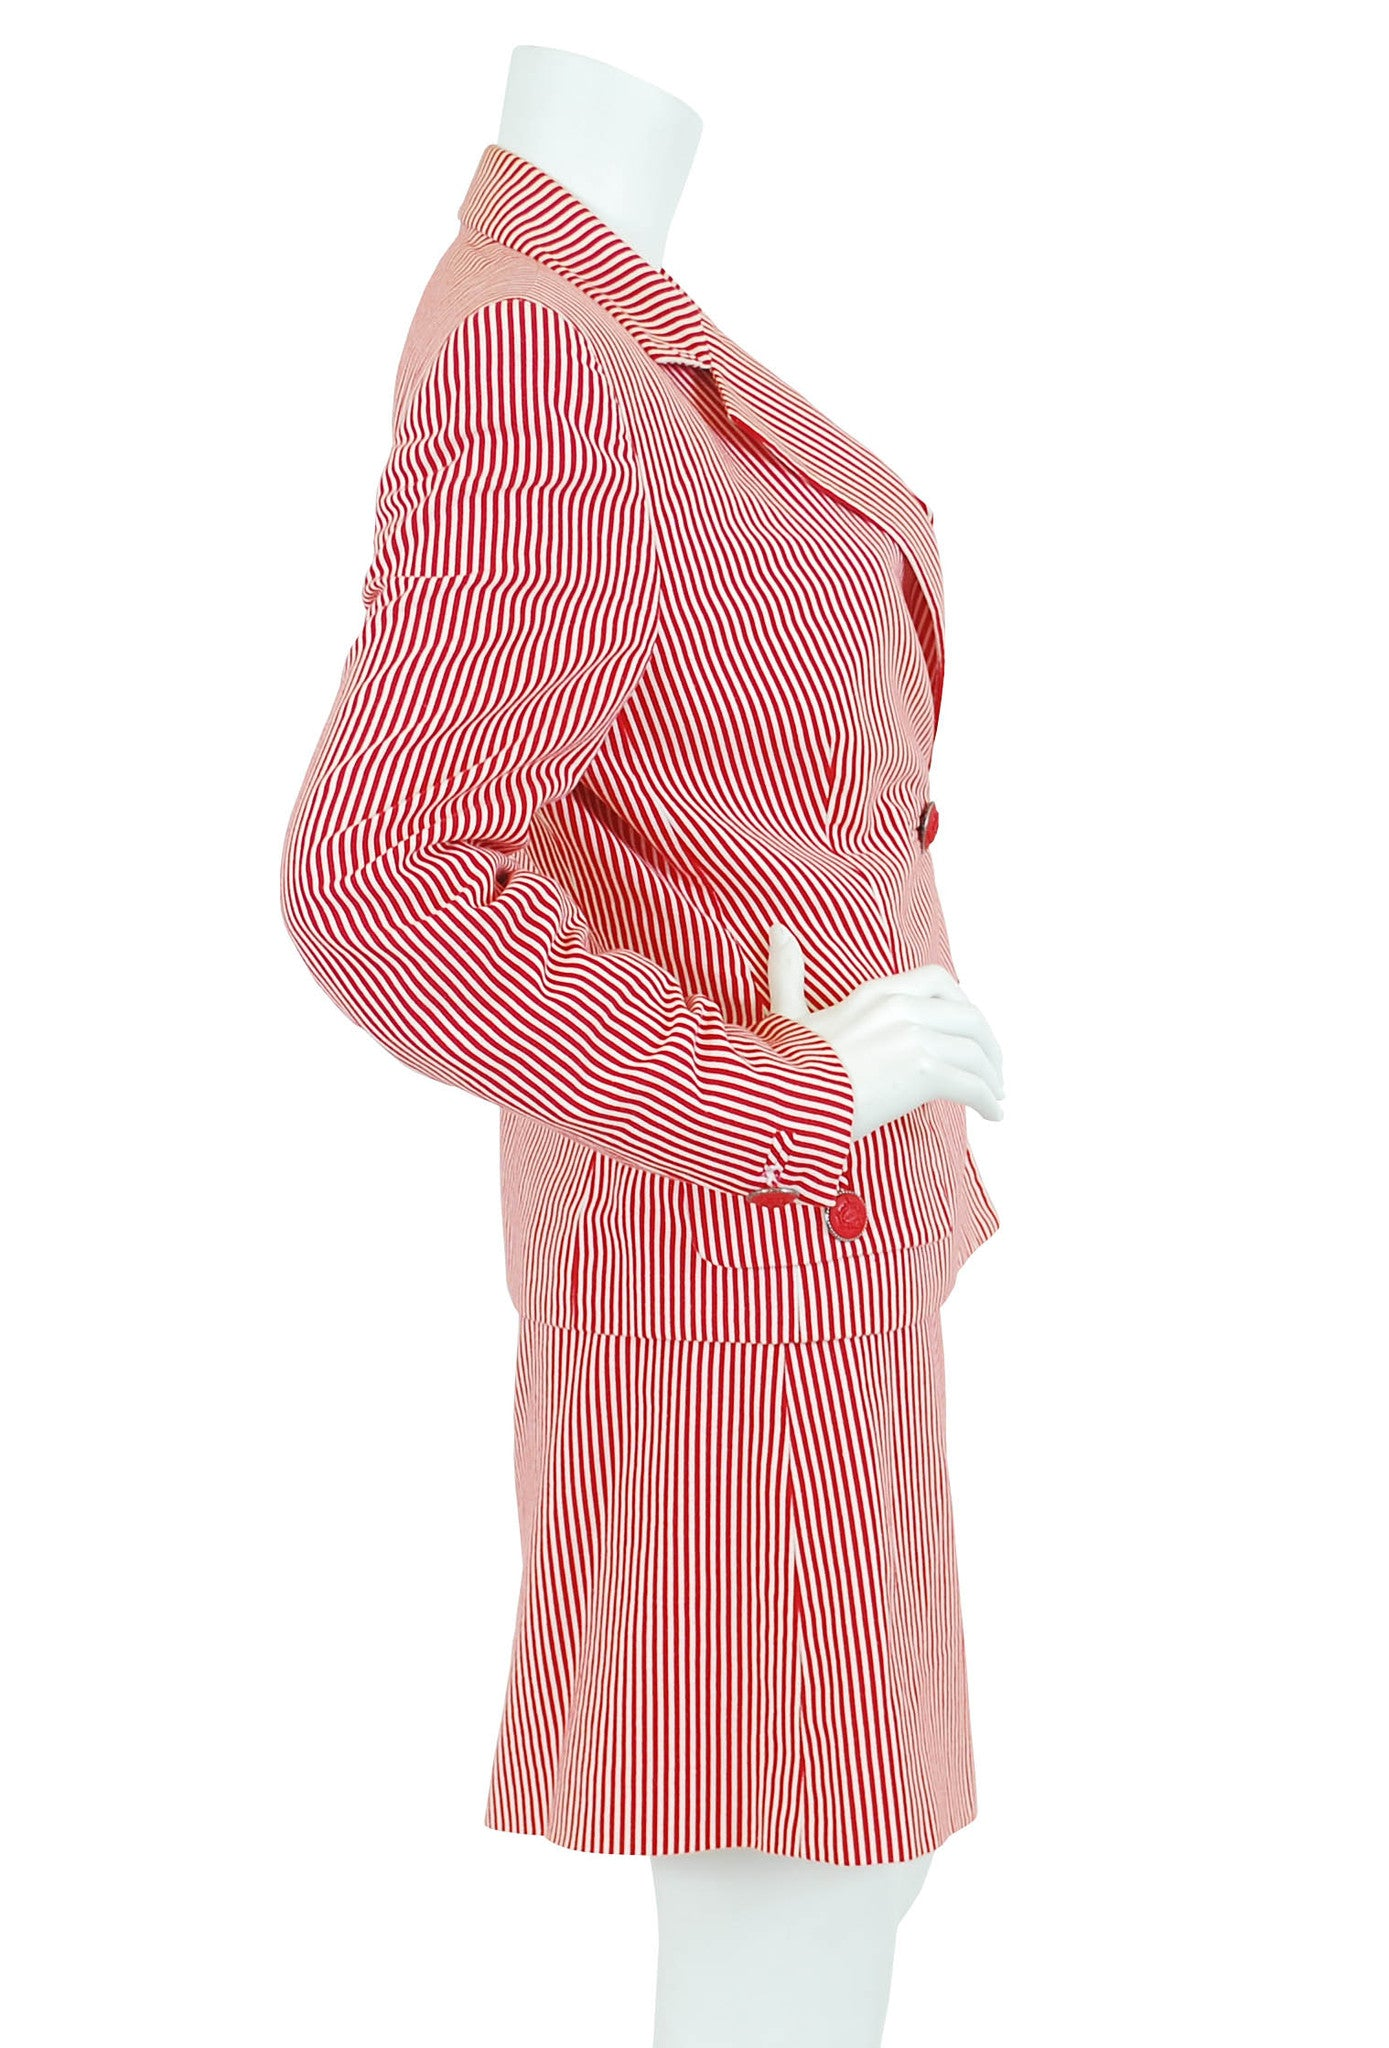 Red & White Pinstriped Skirt Suit